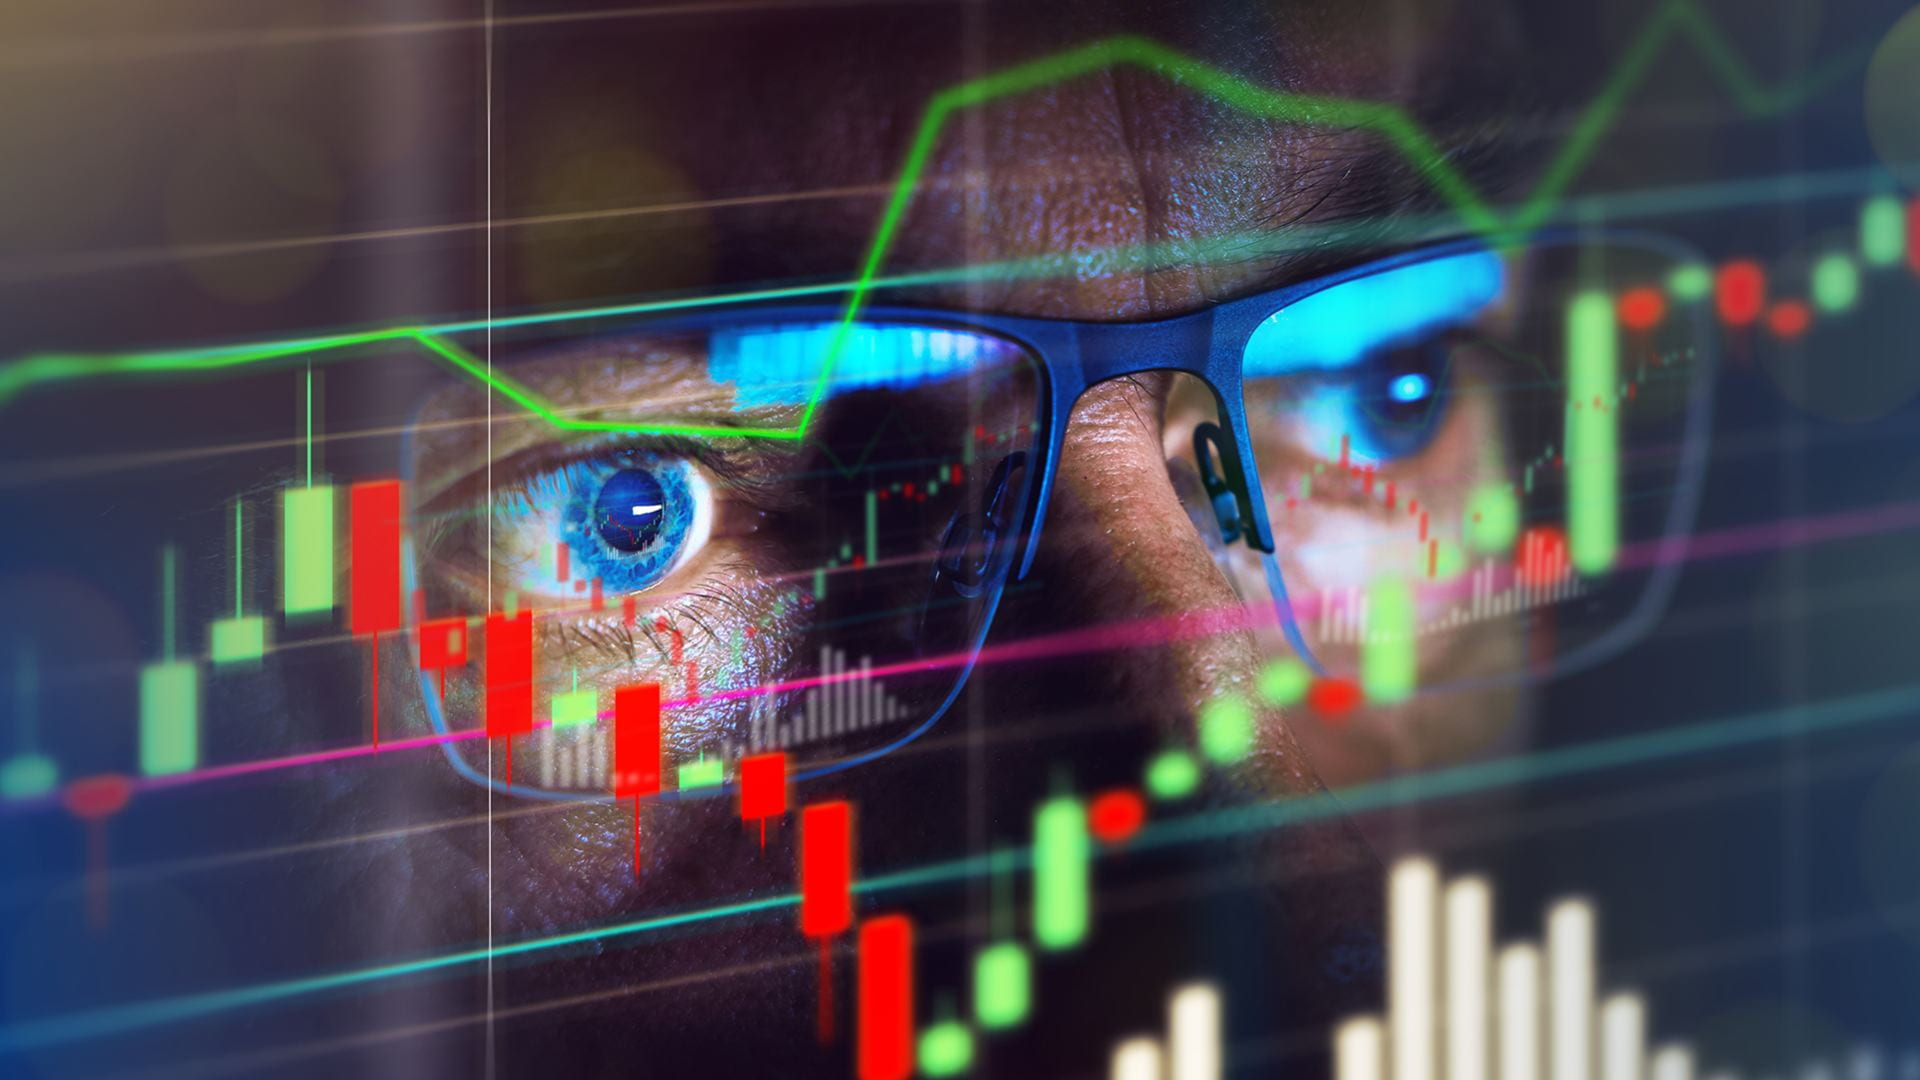 close up of a person's eyes watching stocks